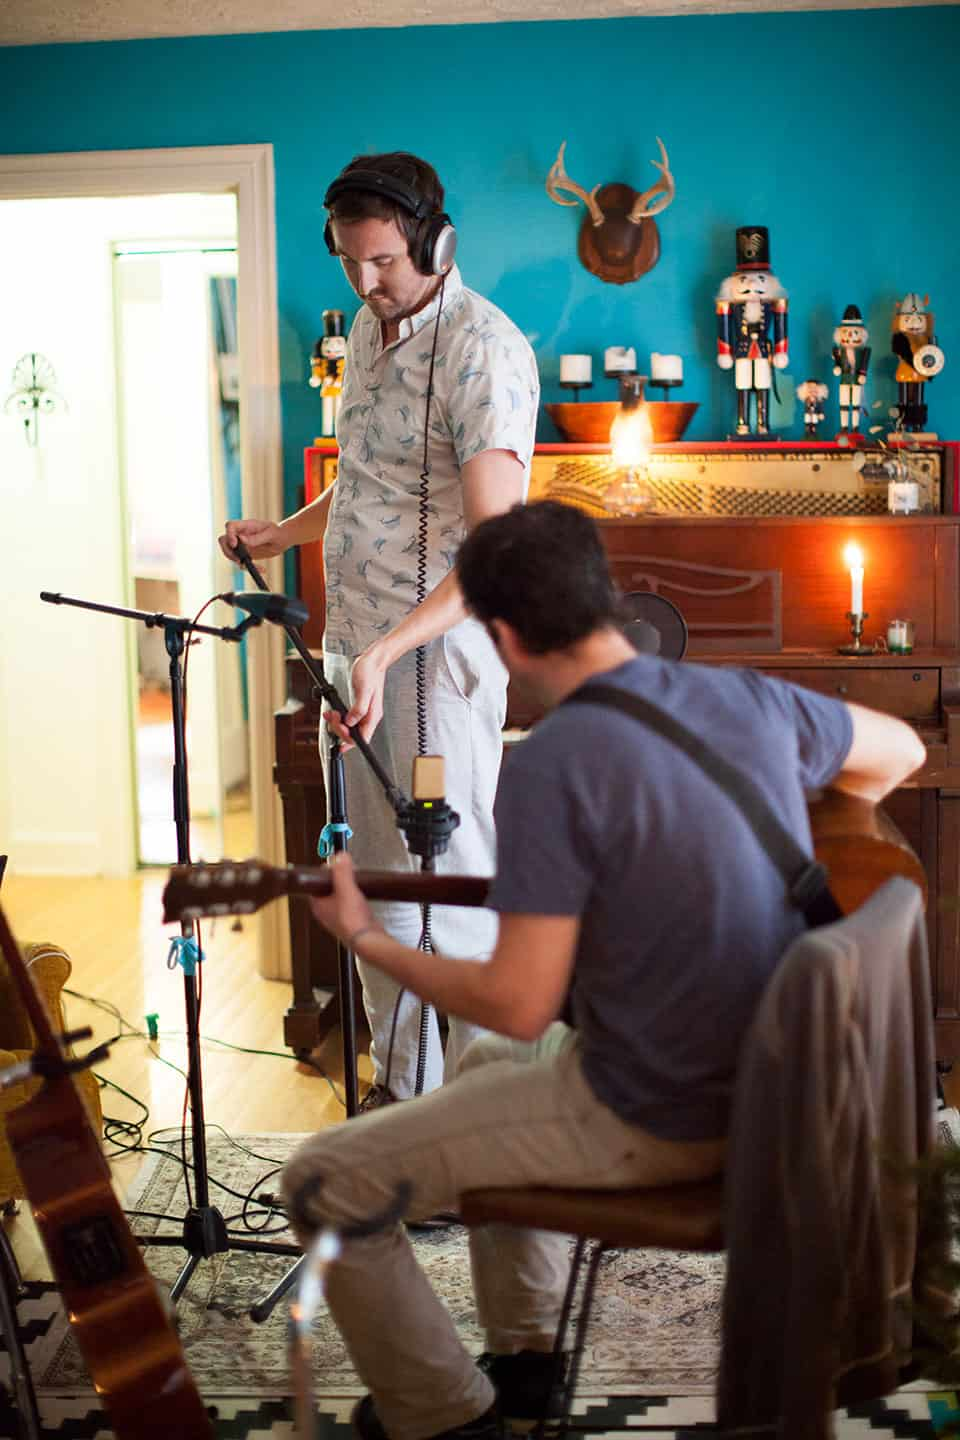 Mark Cofer: Transforming a Love of Music into a Living Career